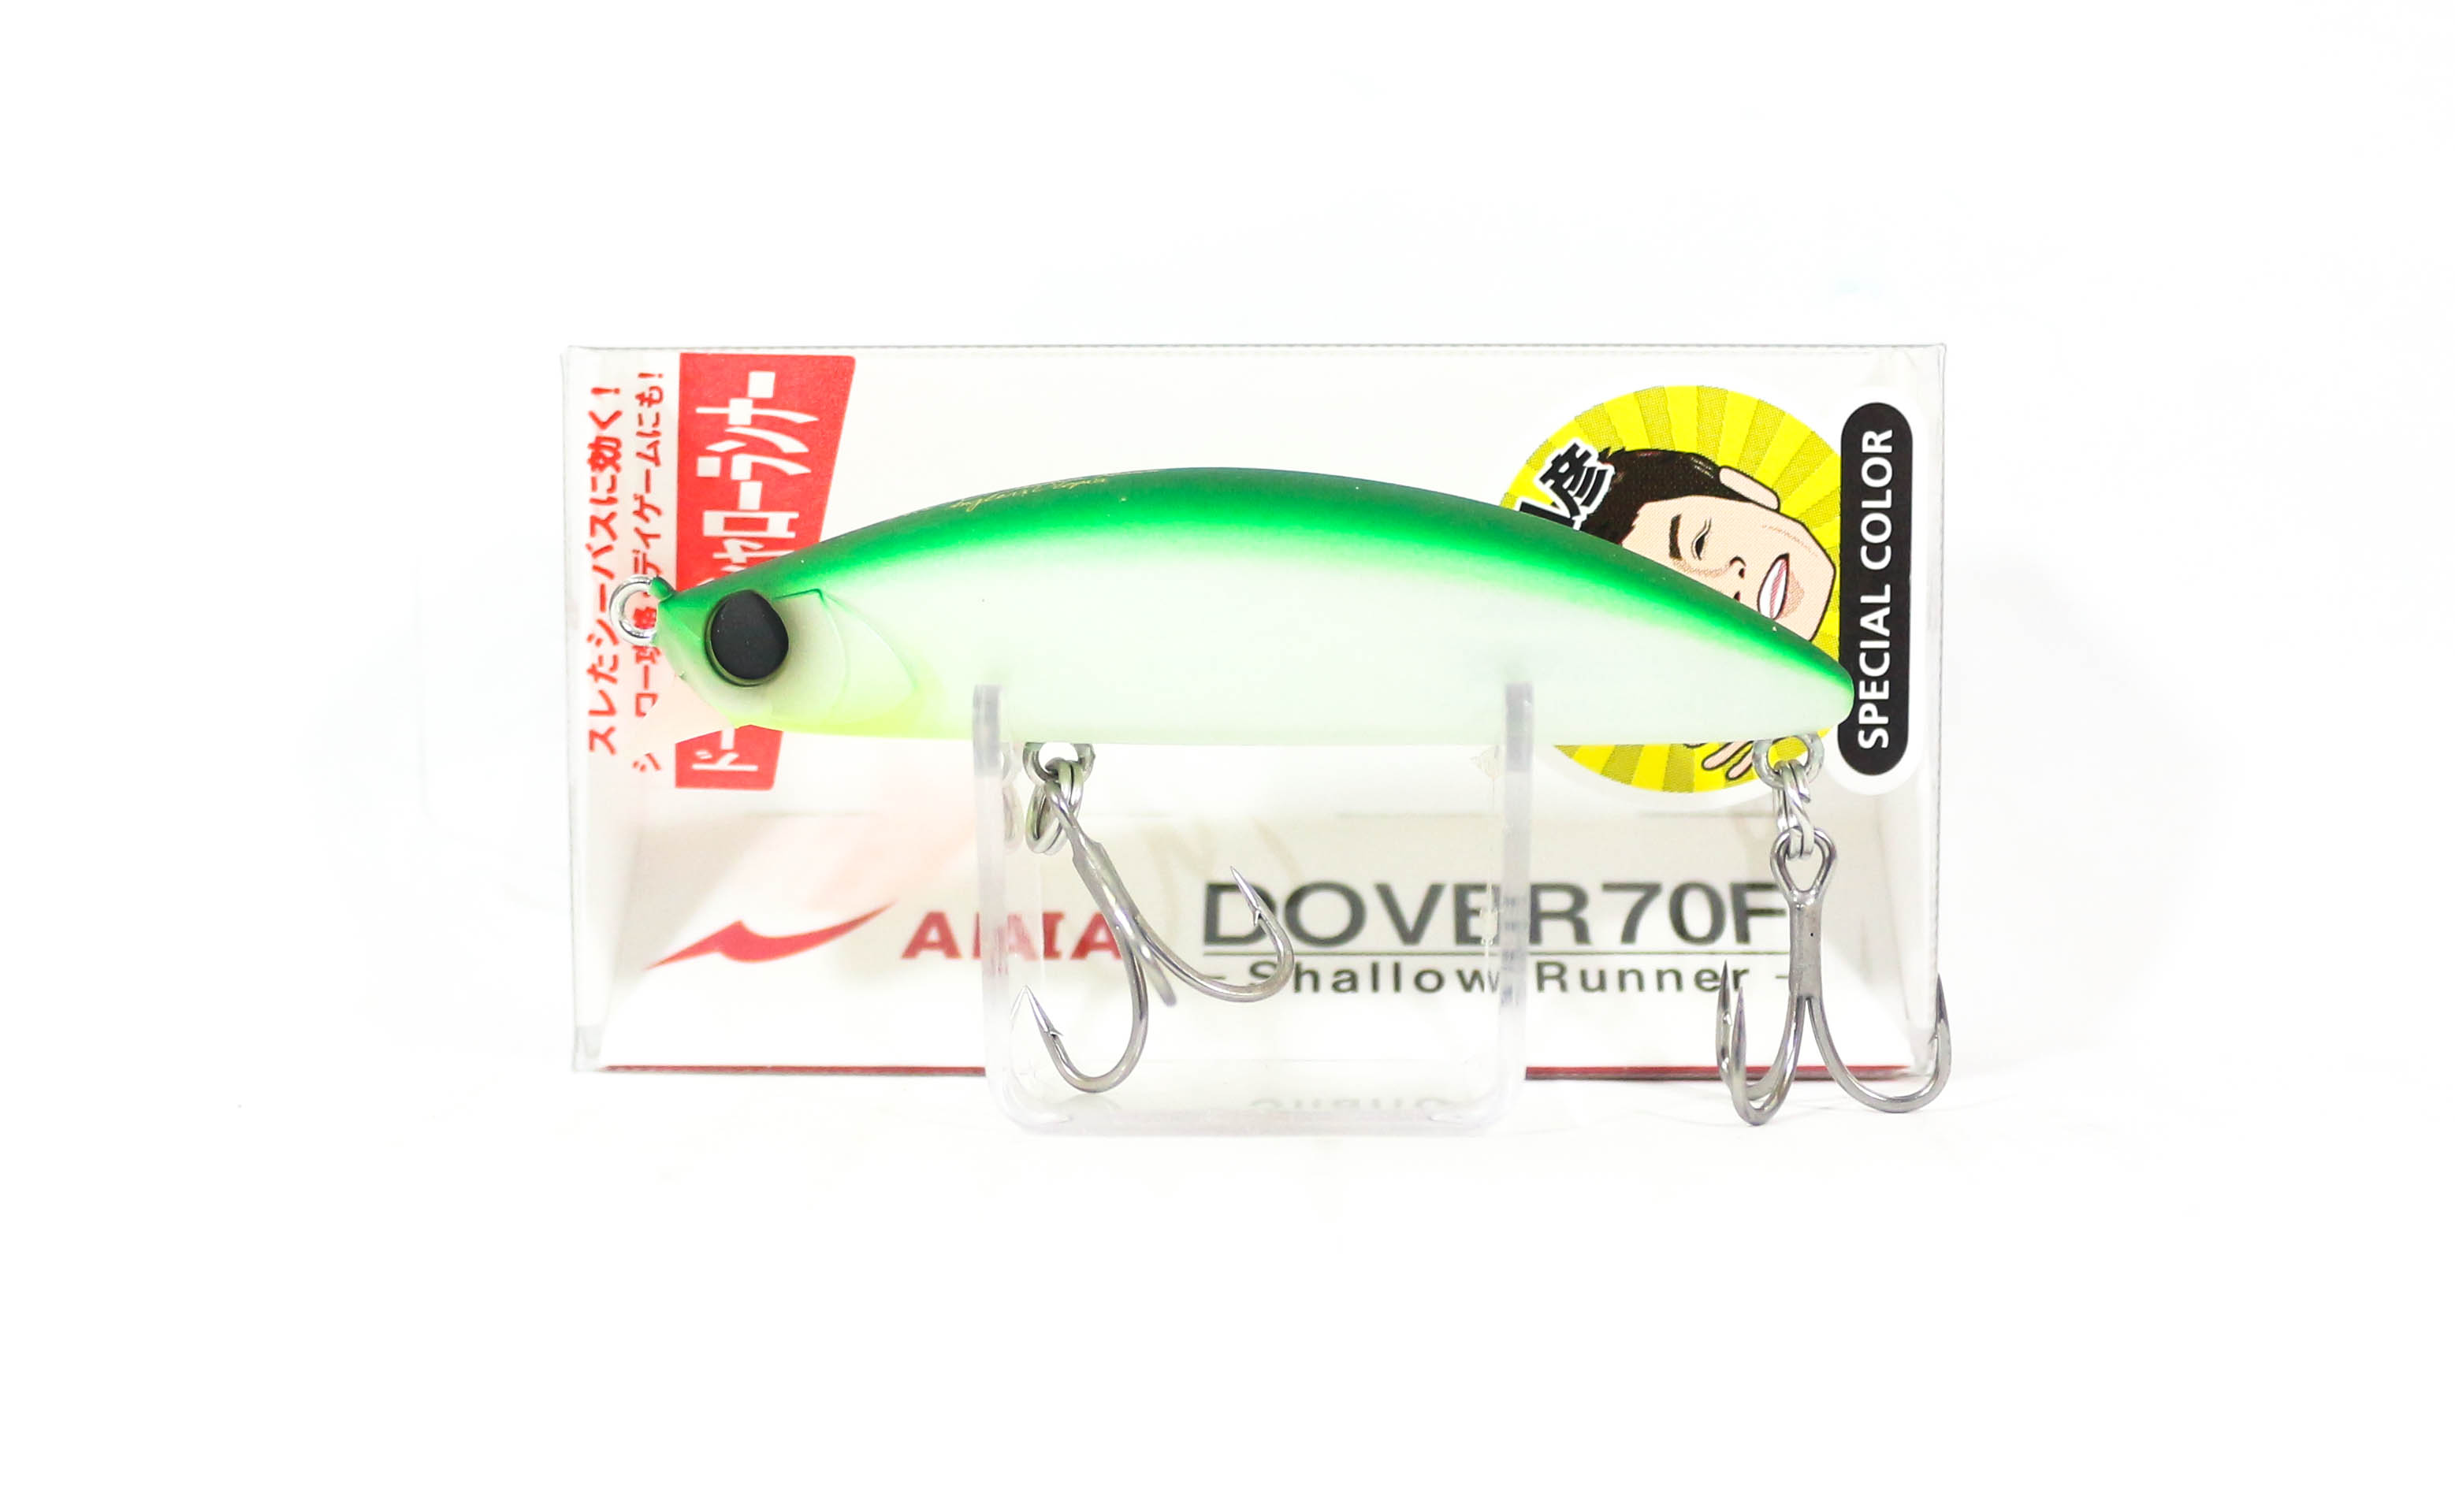 Apia Dover 70 F Floating Lure 07 (8658)